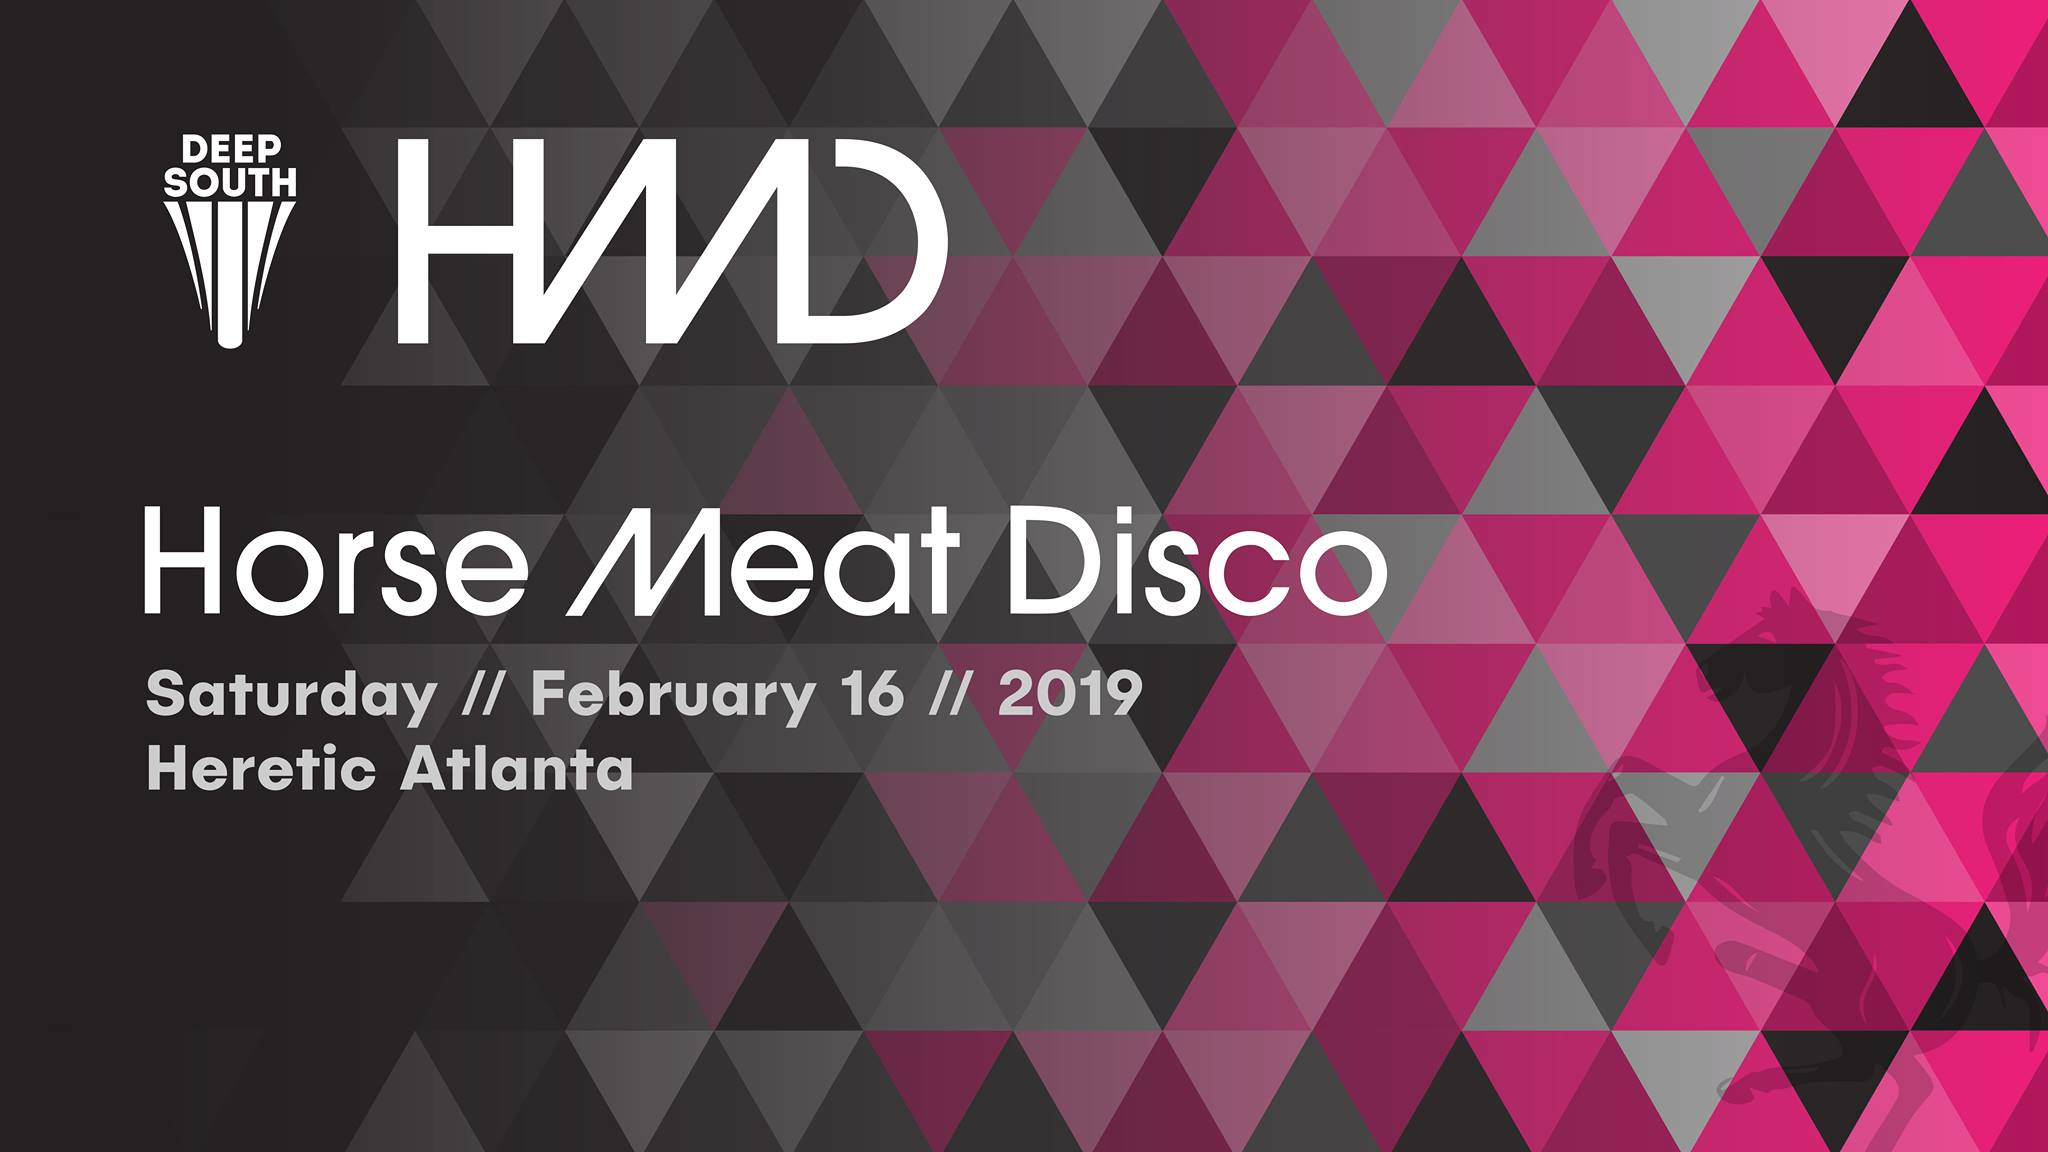 SATURDAY | FEBRUARY 16TH, 2019  HORSE MEAT DISCO AT HERETIC